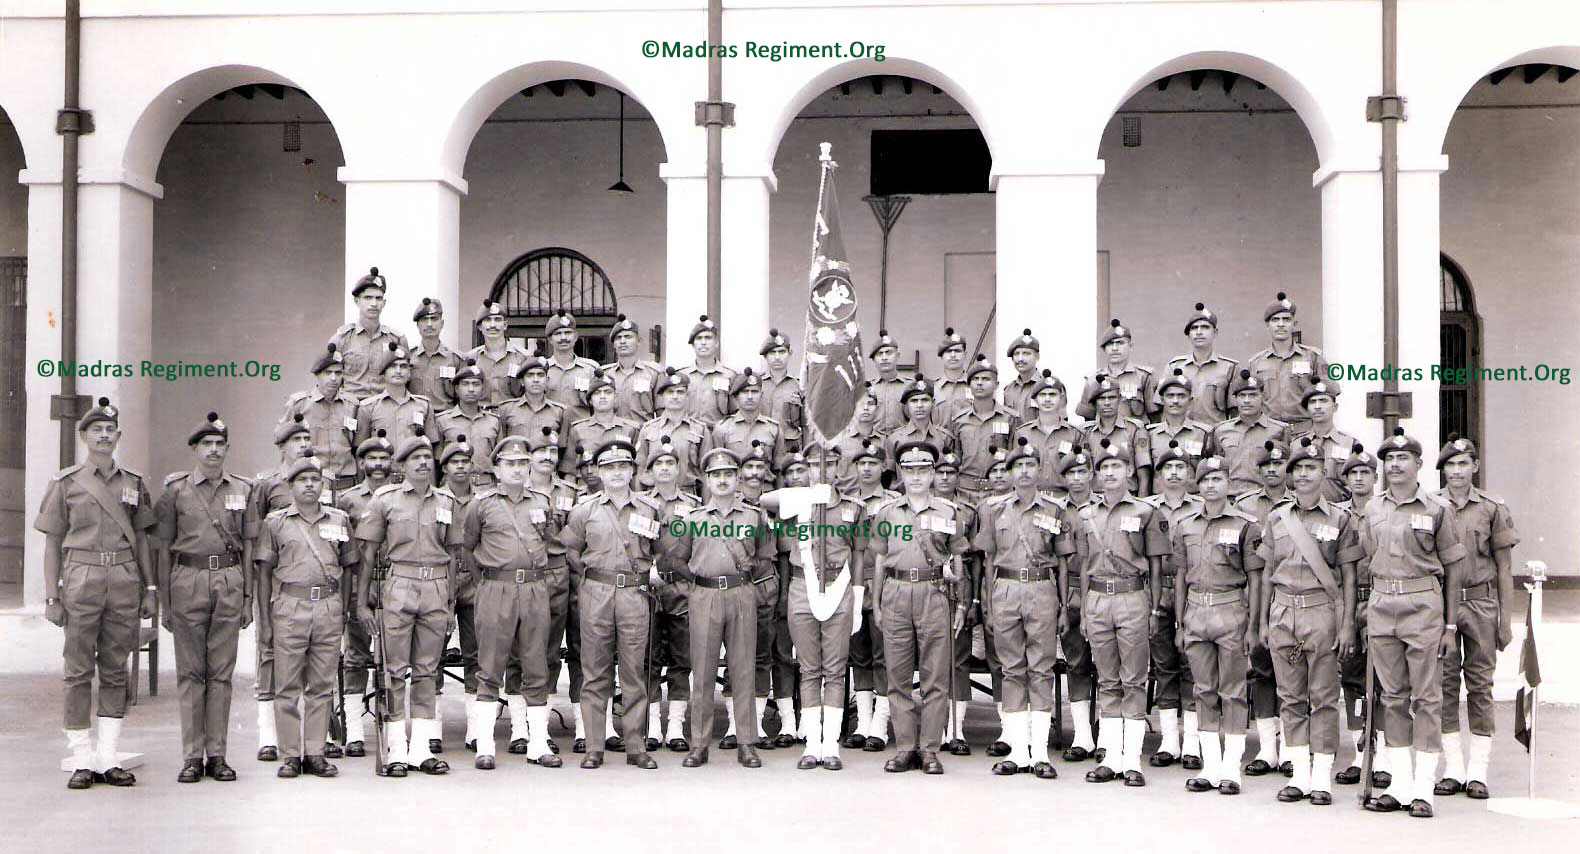 1970 - 3 Madras contingent at MRC